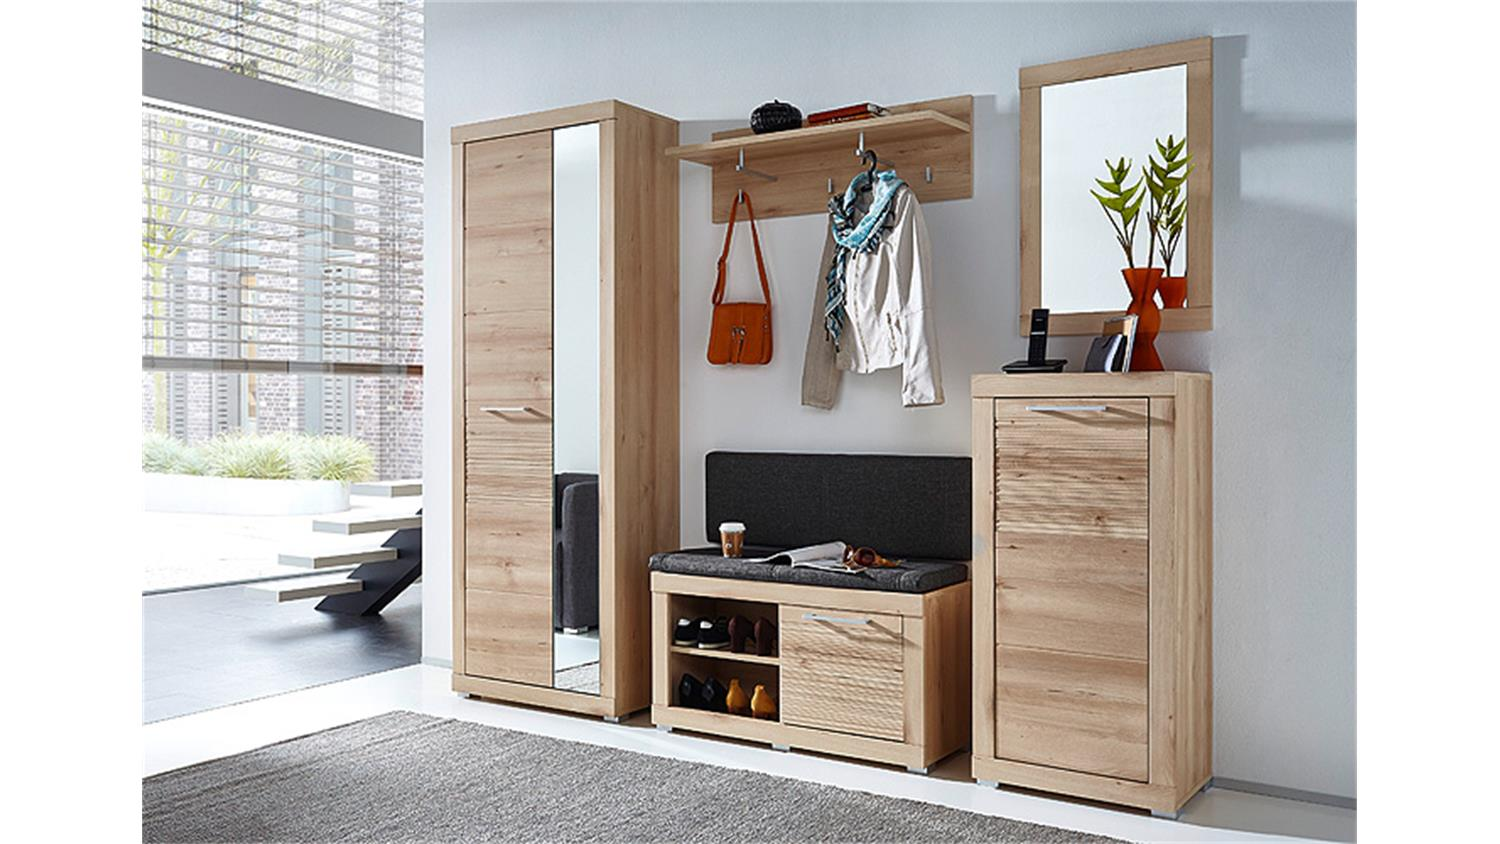 garderobenschrank targa schrank flurschrank in buche hell. Black Bedroom Furniture Sets. Home Design Ideas